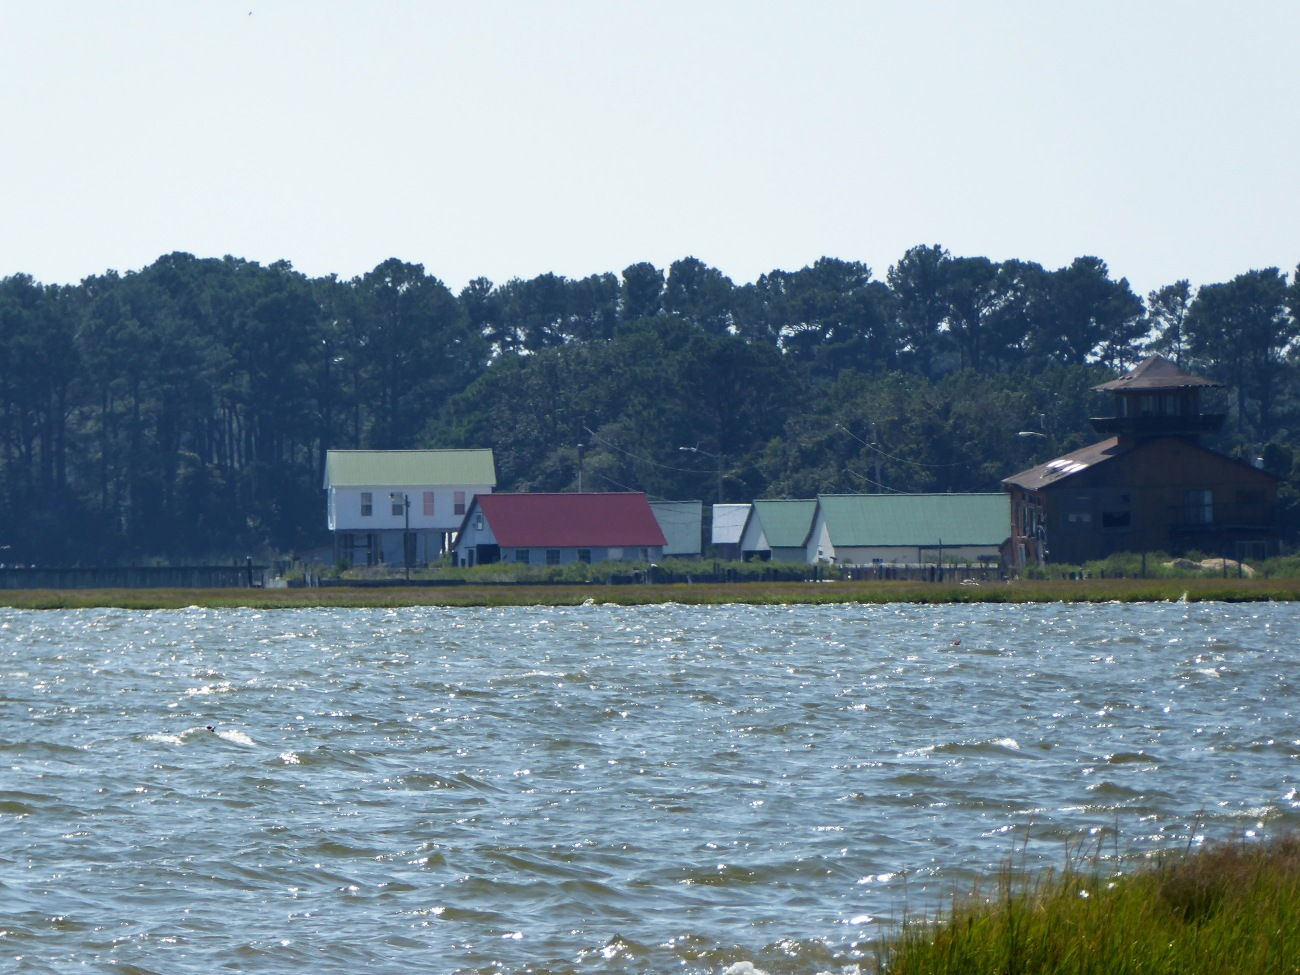 20170904_144311_Distant View of Taylor's Landing